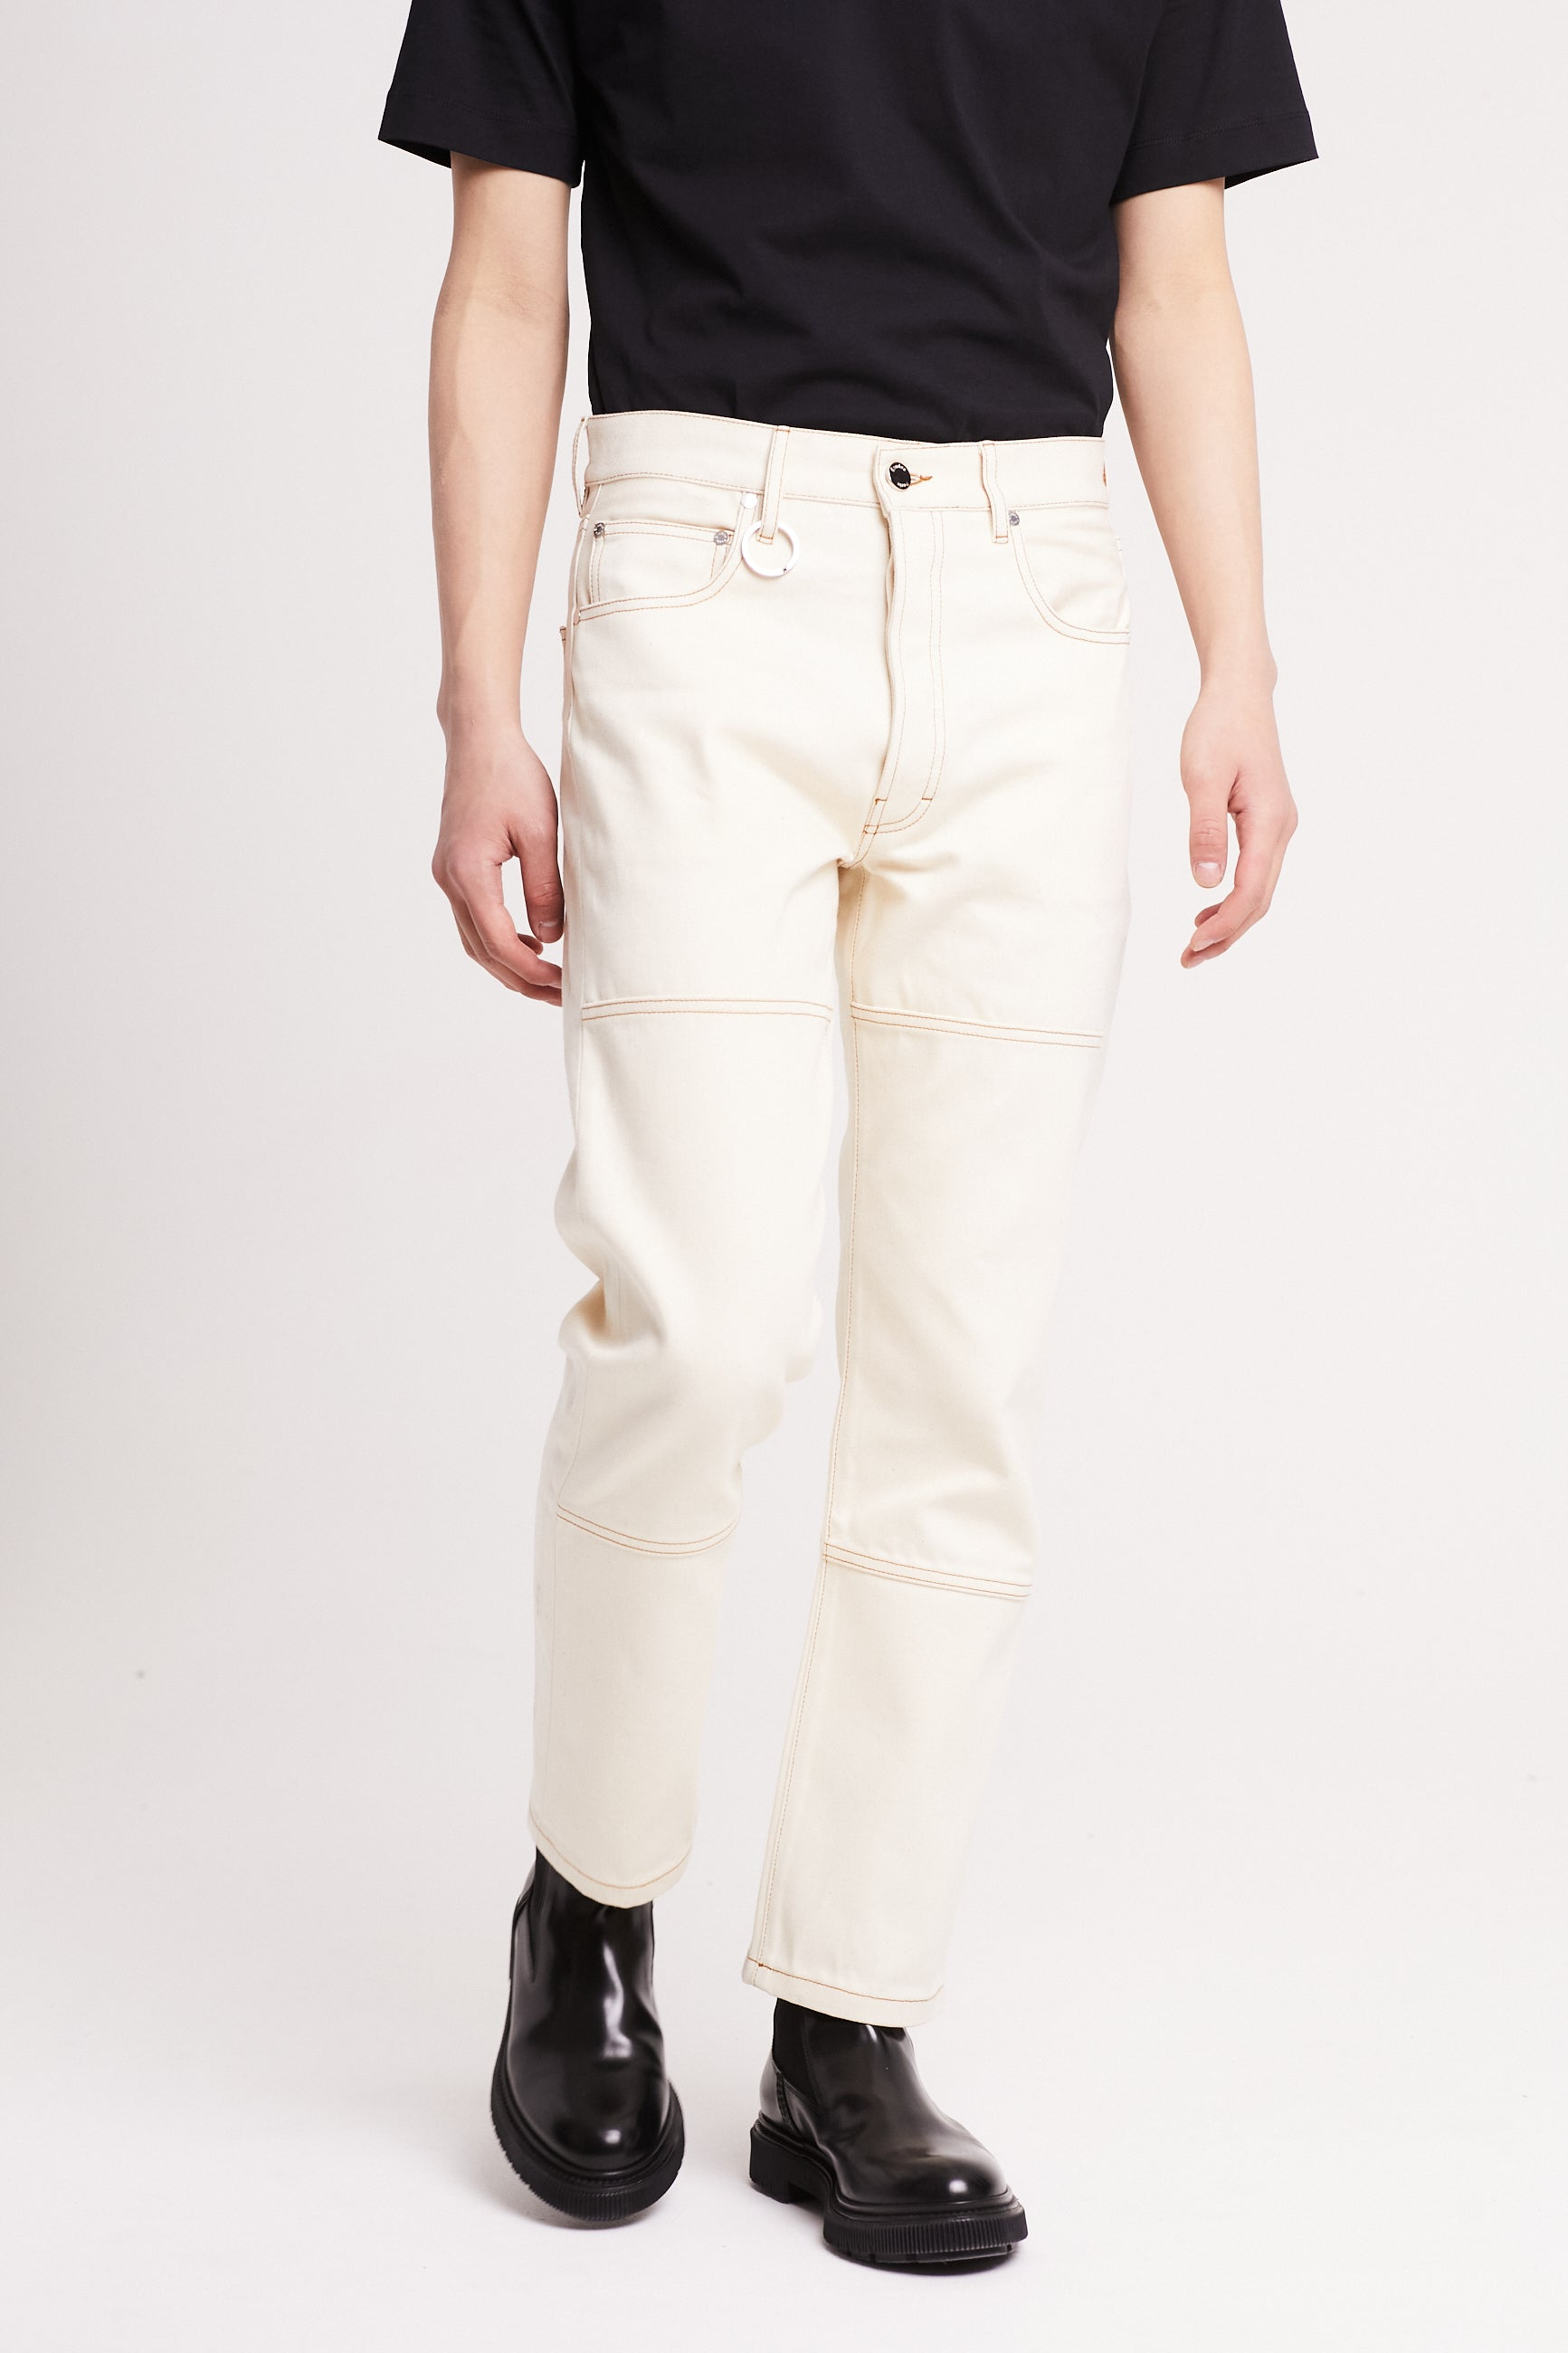 Études Corner Off White Trousers 2